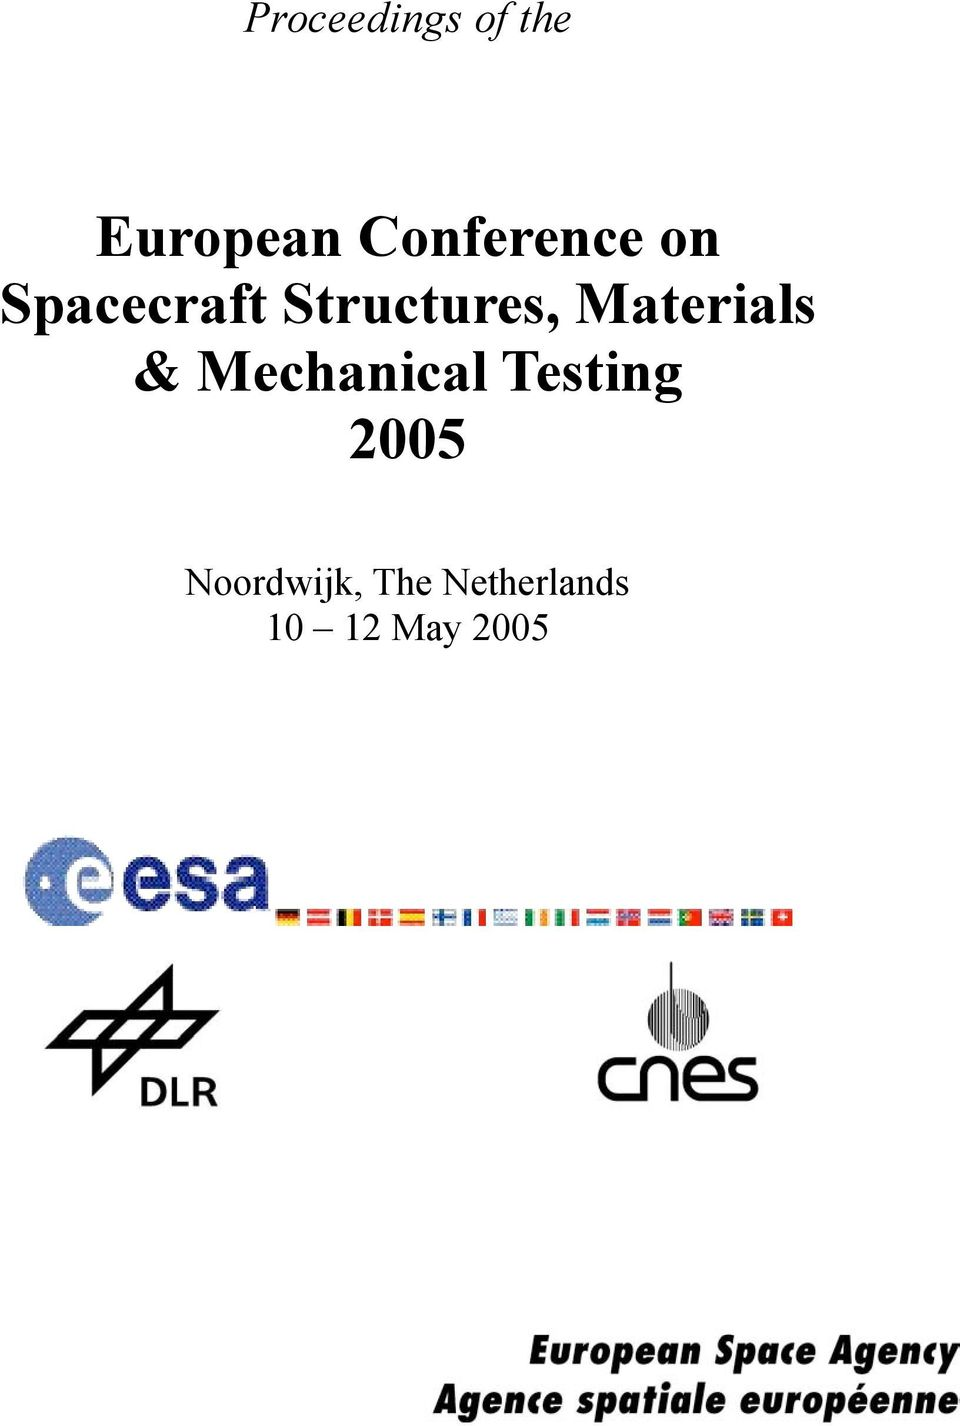 Structures, Materials & Mechanical